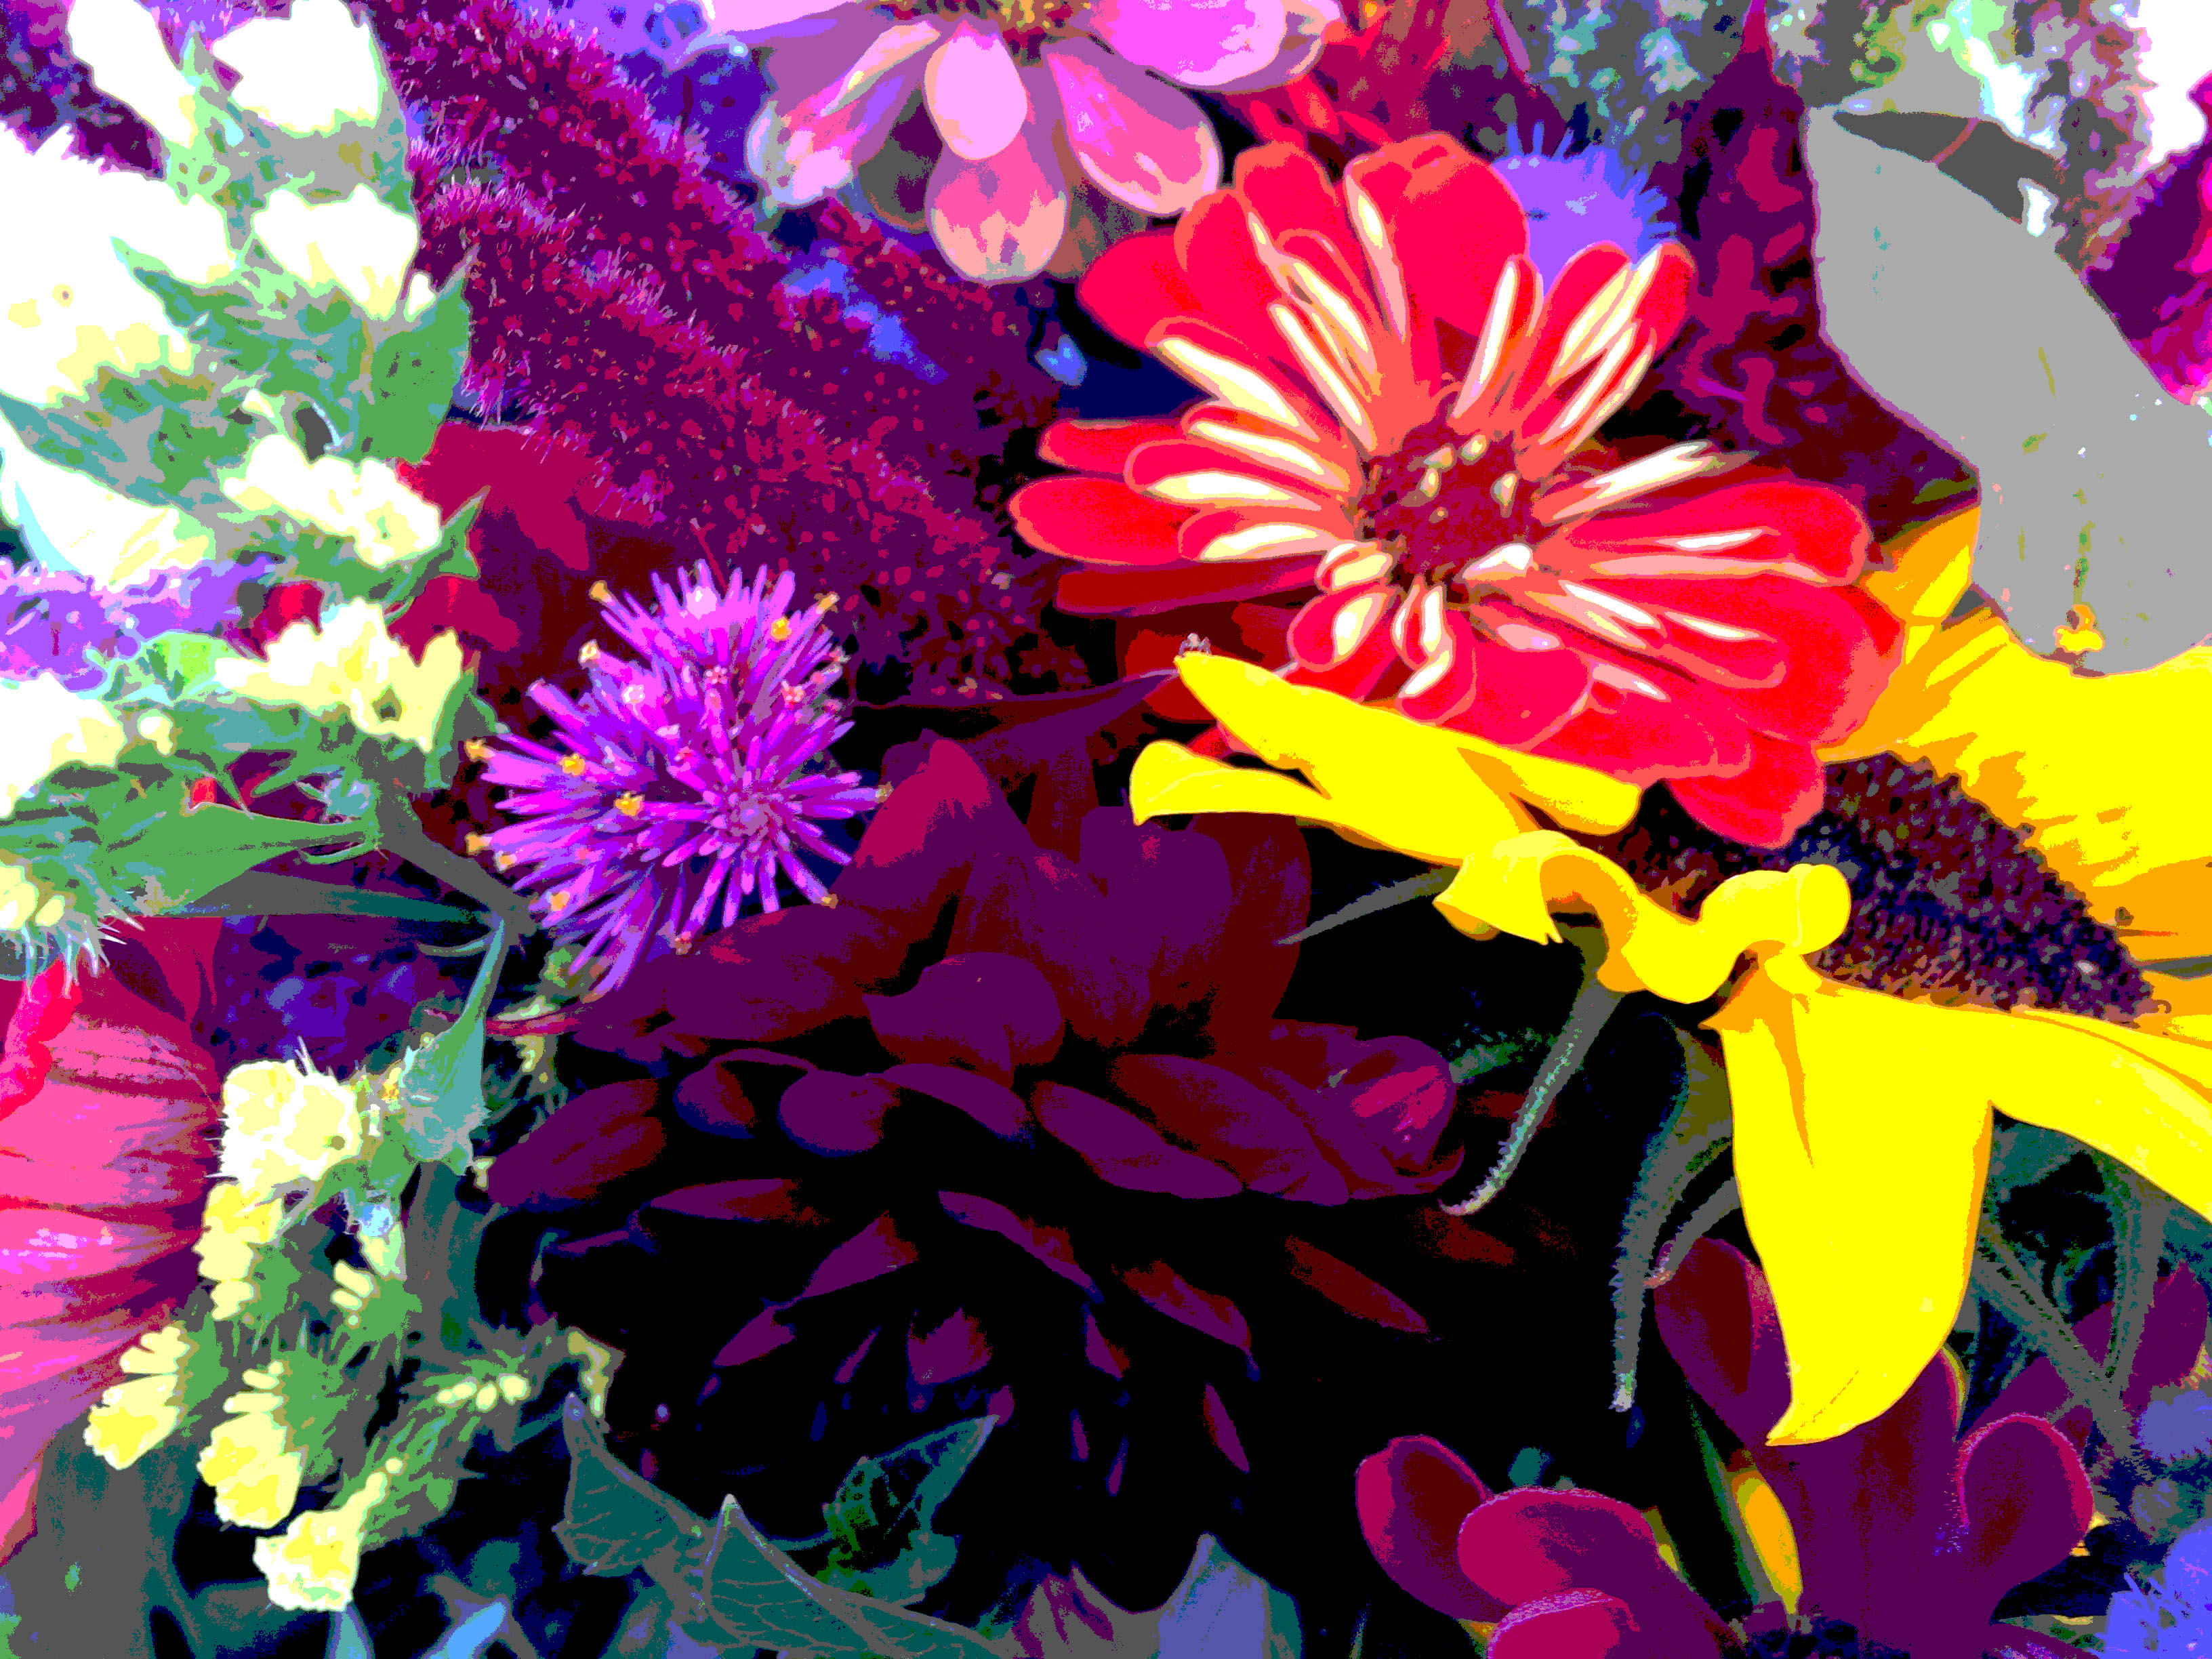 bright flowers posterized